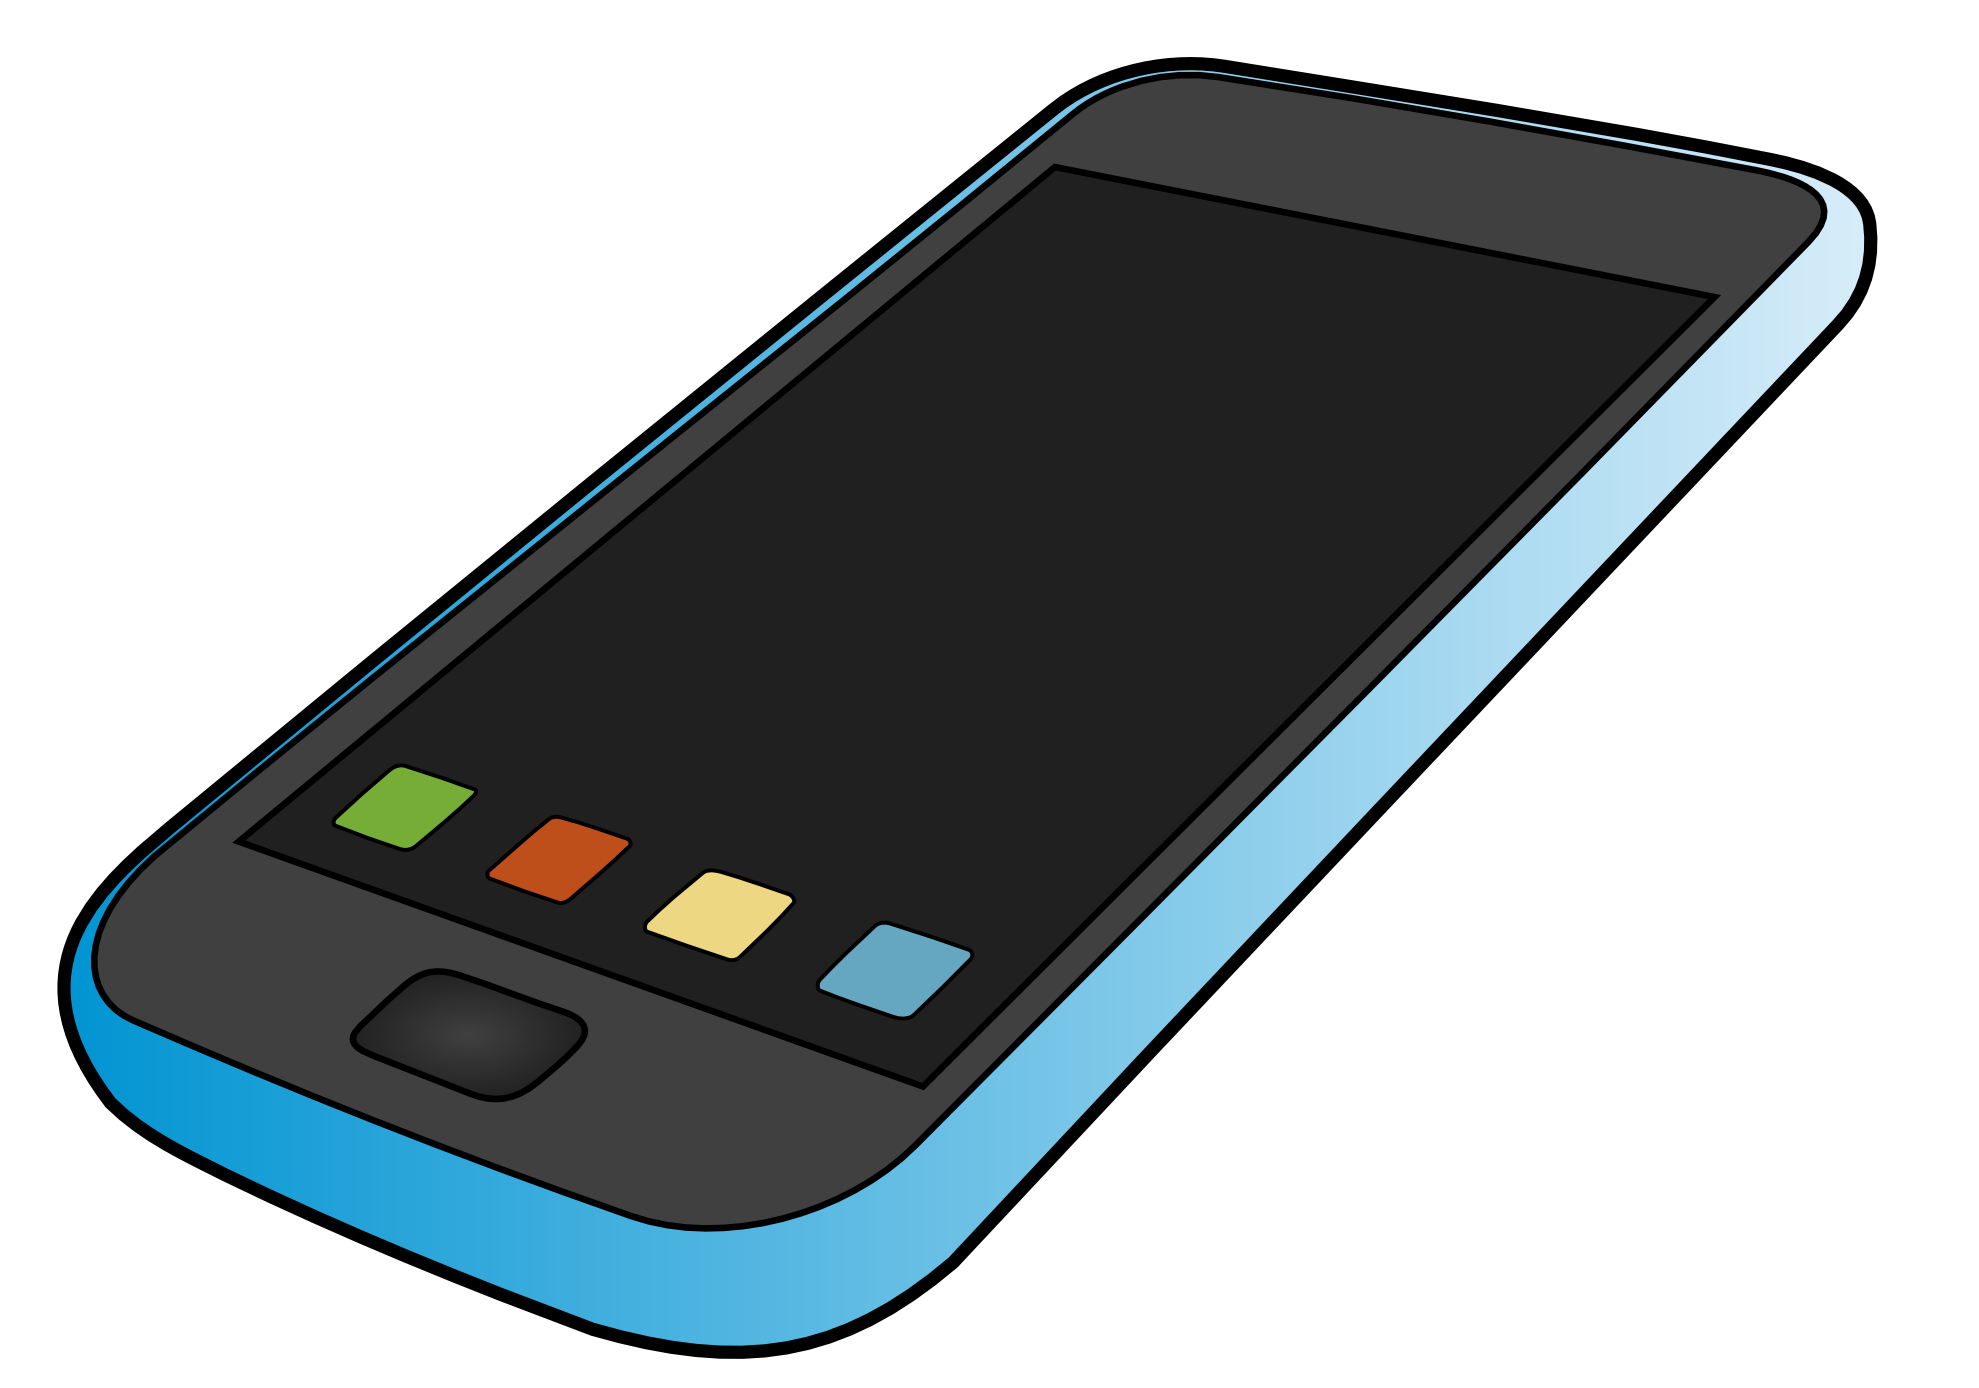 http://images.clipartpanda.com/iphone-cell-phone-clipart-jcxEzM5yi.png